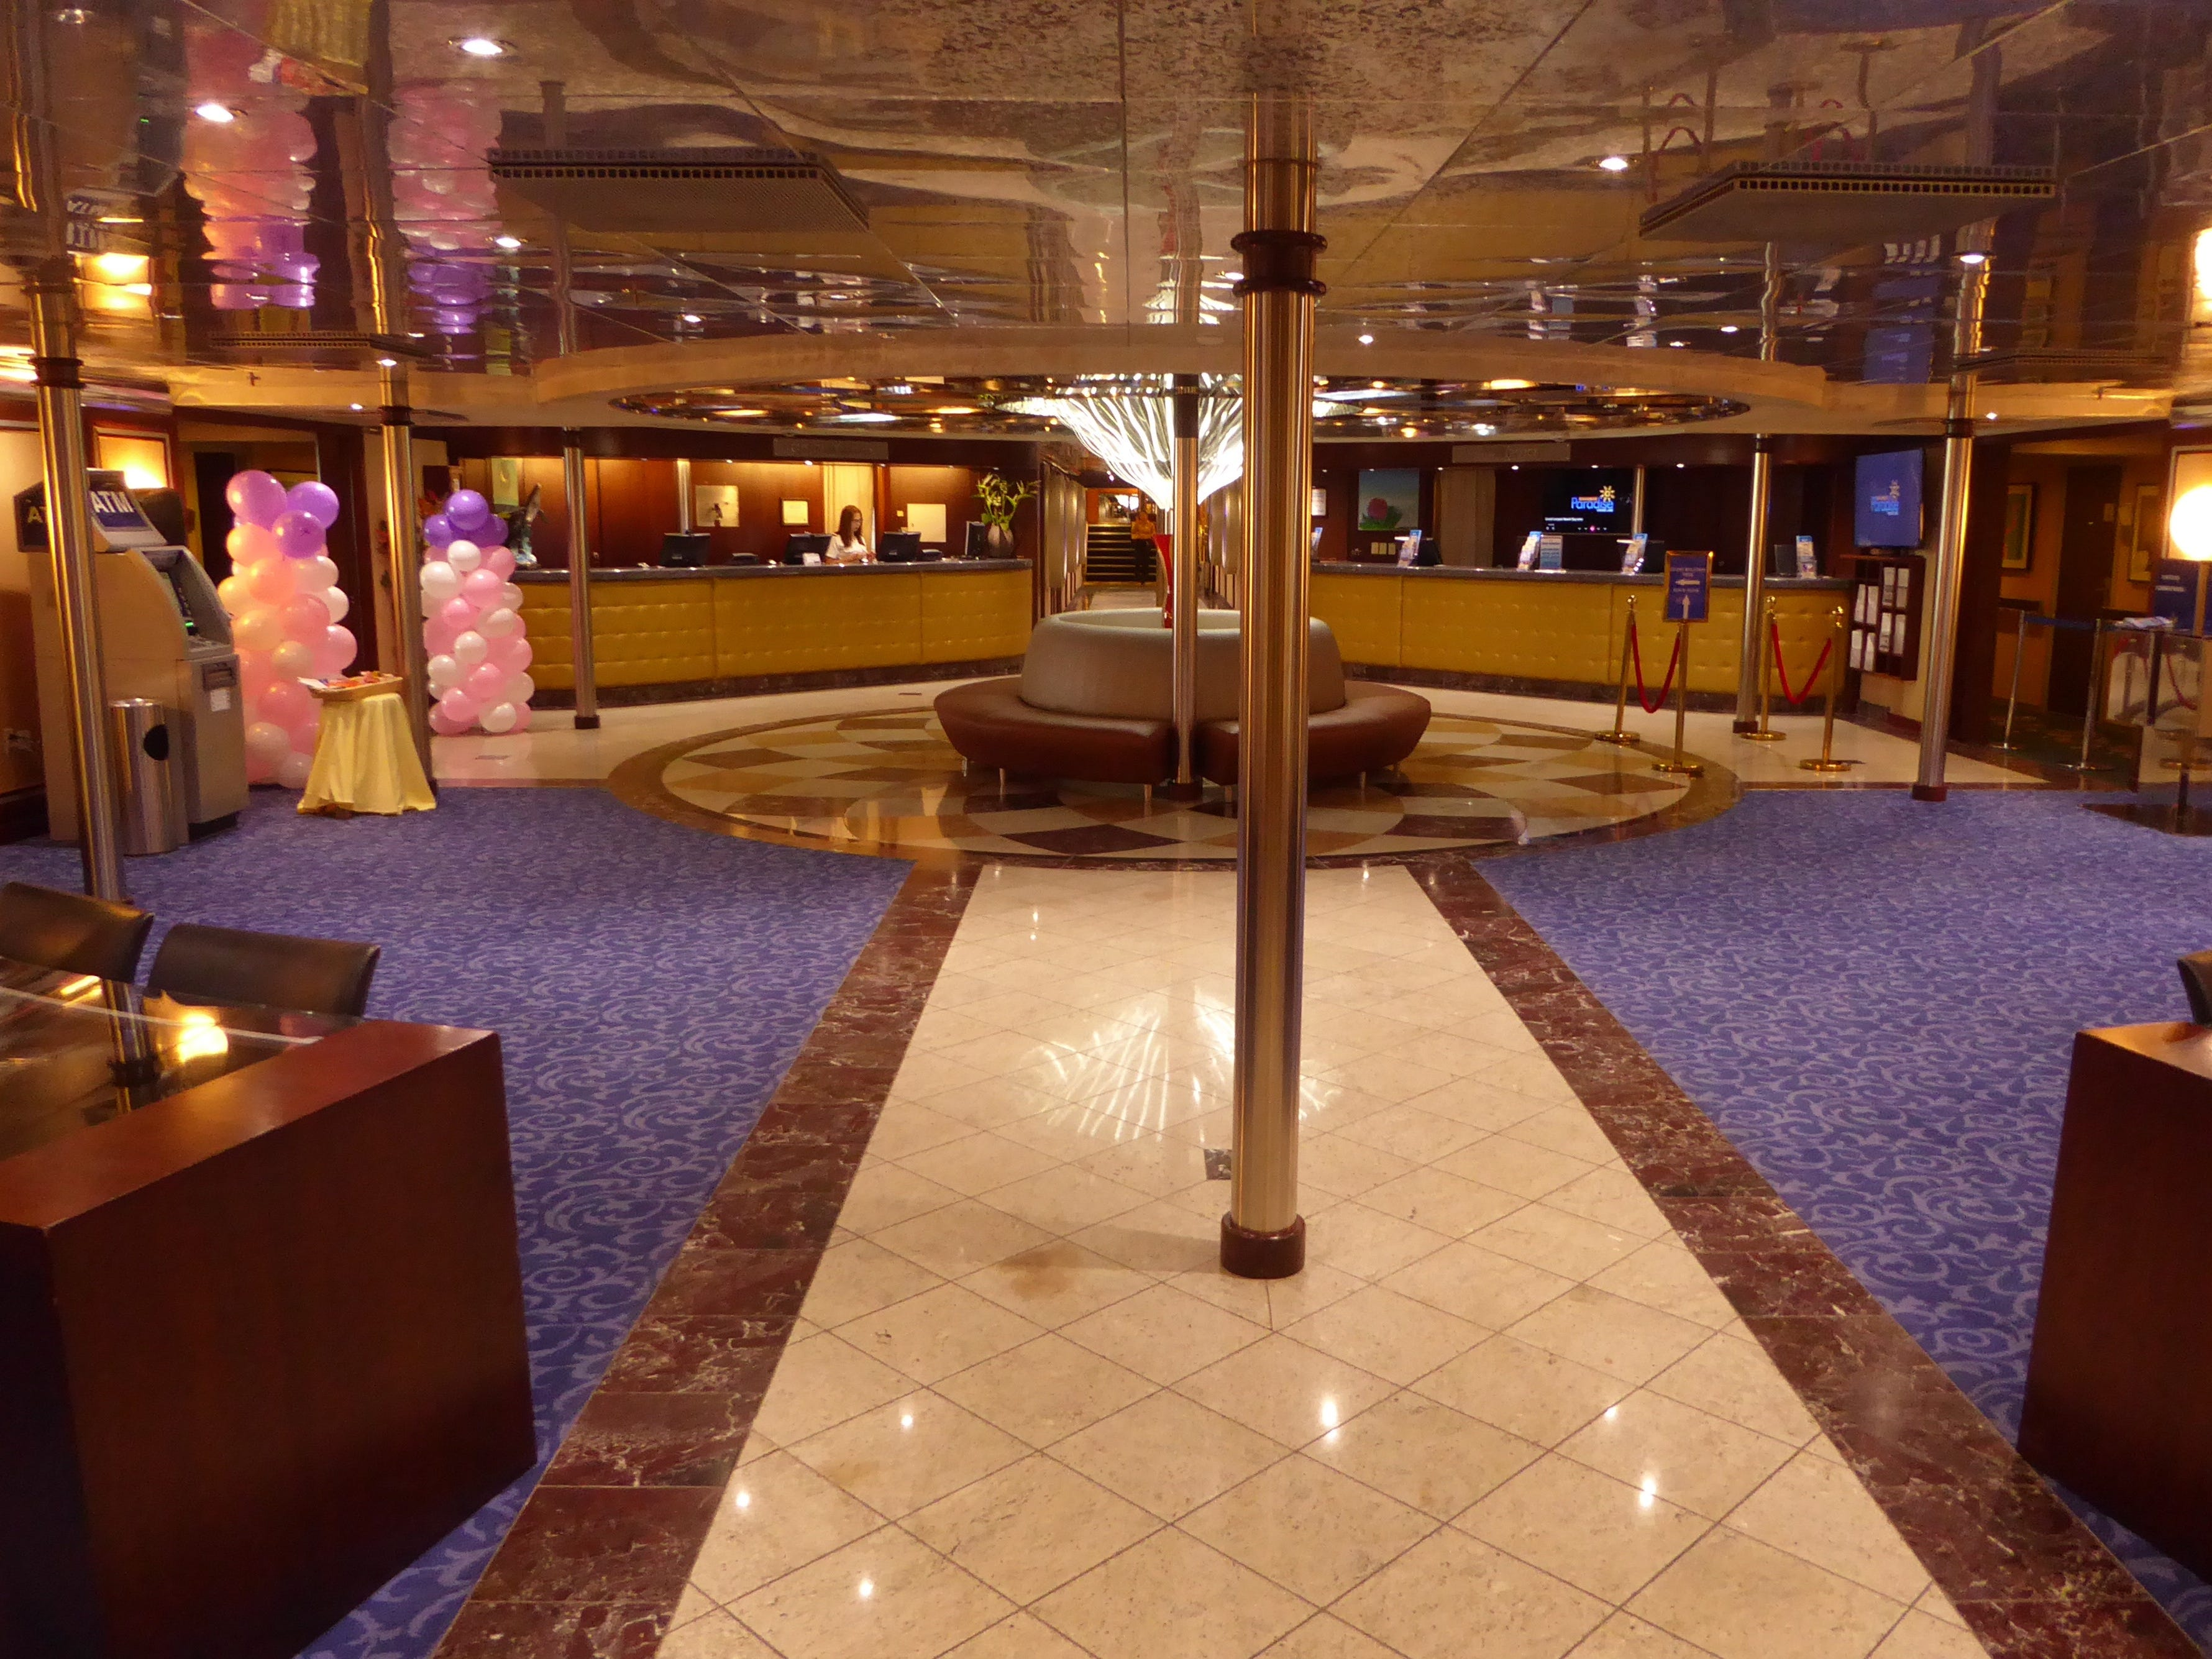 Most guests enter the Grand Celebration via the lobby on Moon Deck (5) where the reception desk is located.